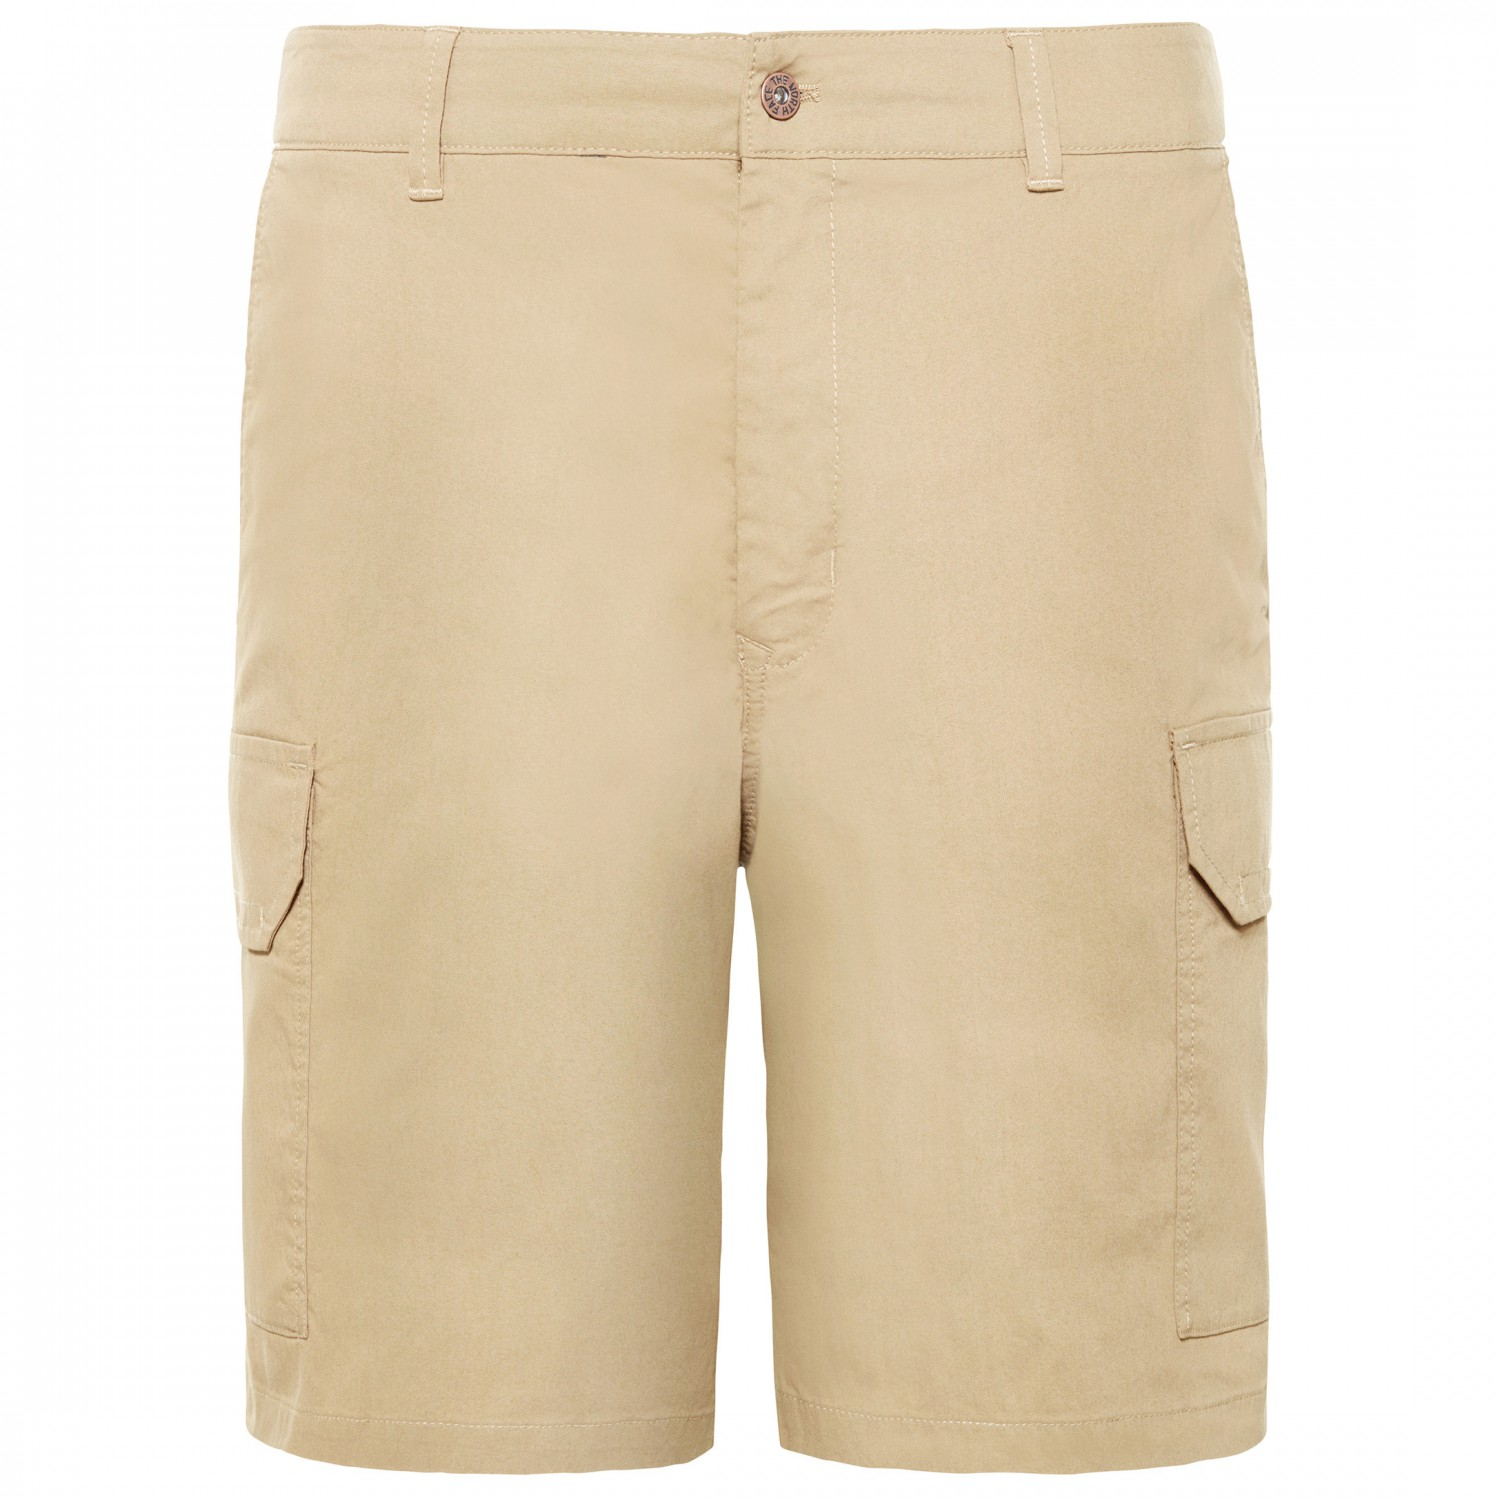 design di qualità d8372 febeb The North Face - Junction Short - Pantaloncini - Kelp Tan | 30 - Regular  (US)